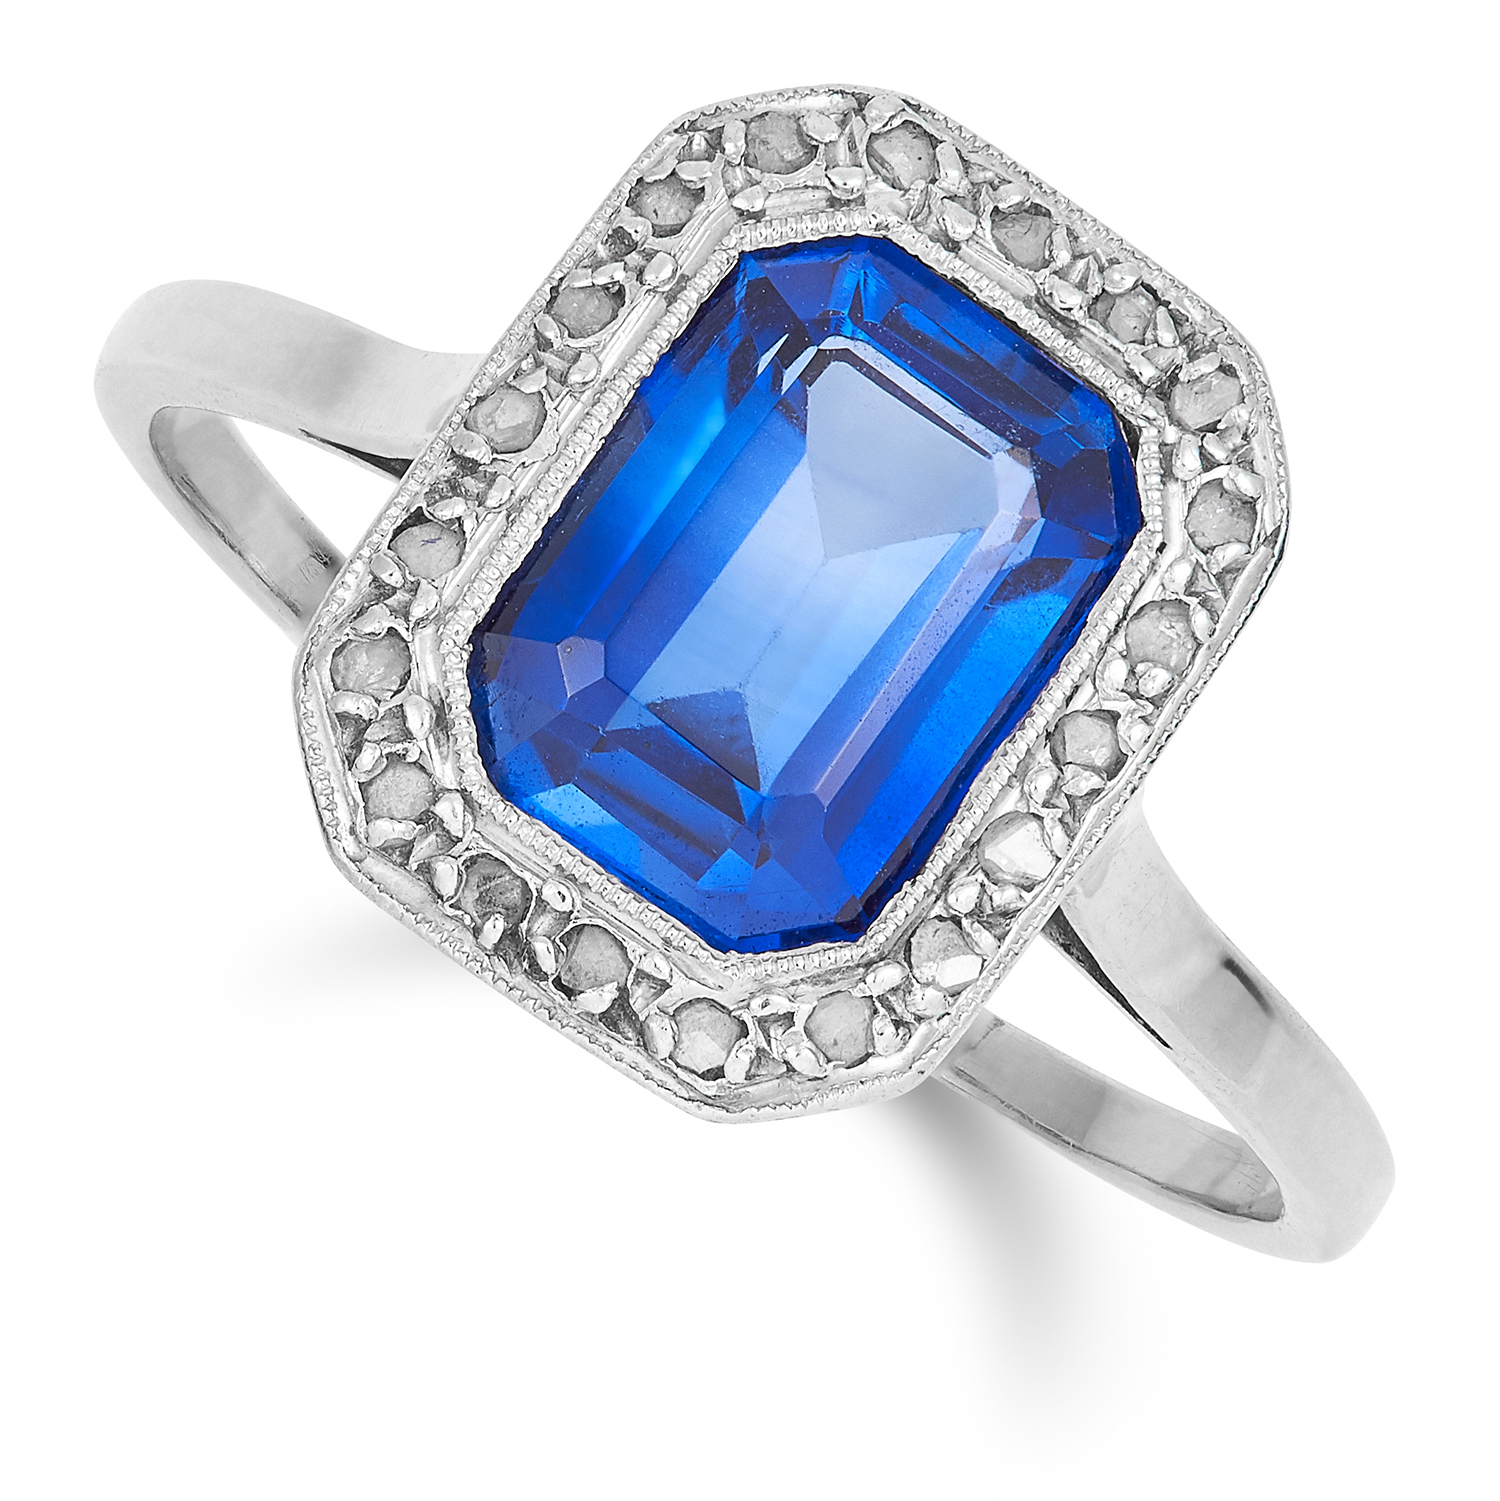 Los 45 - ANTIQUE SYNTHETIC SAPPHIRE AND DIAMOND RING set with an emerald cut synthetic sapphire and rose